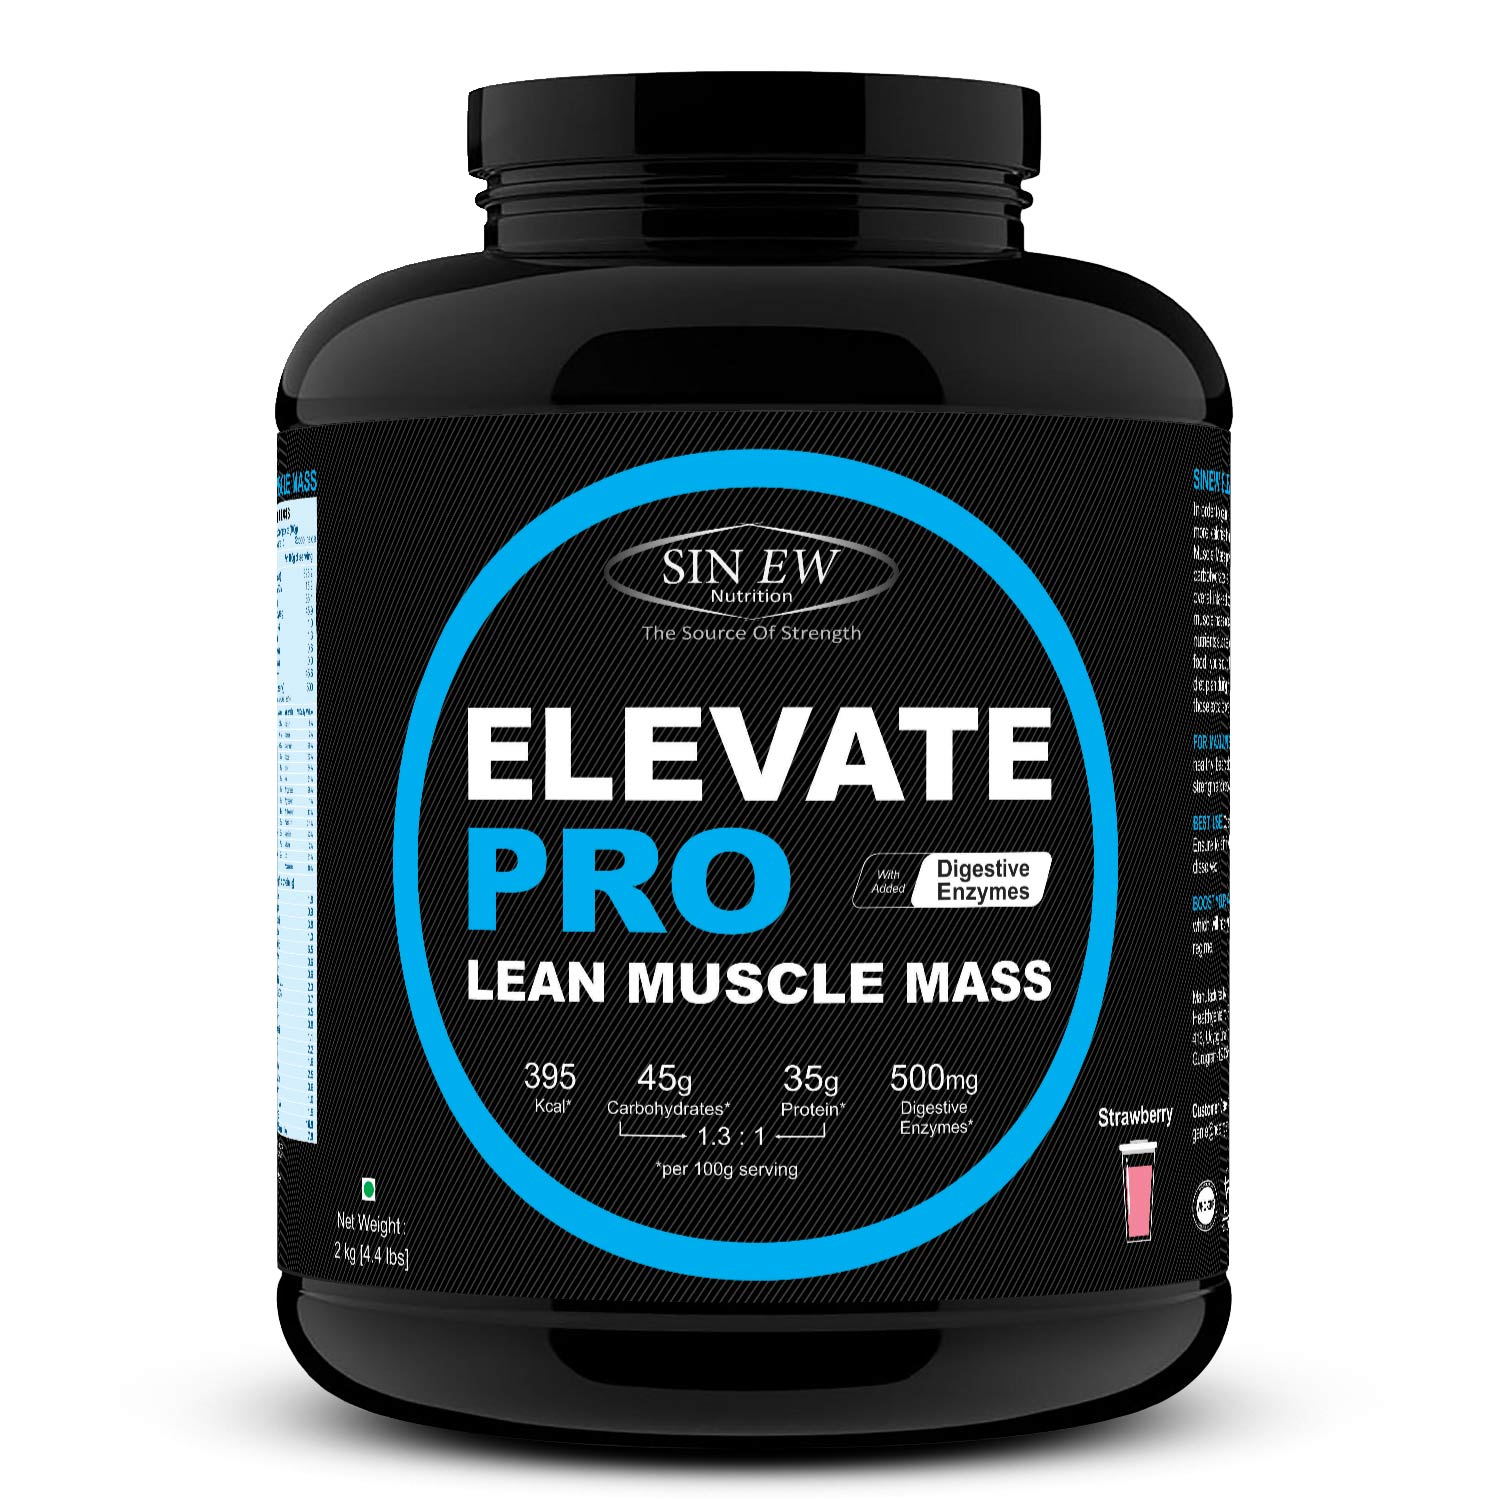 Elevate Pro Lean Muscle Mass (strawberry) 2kg F